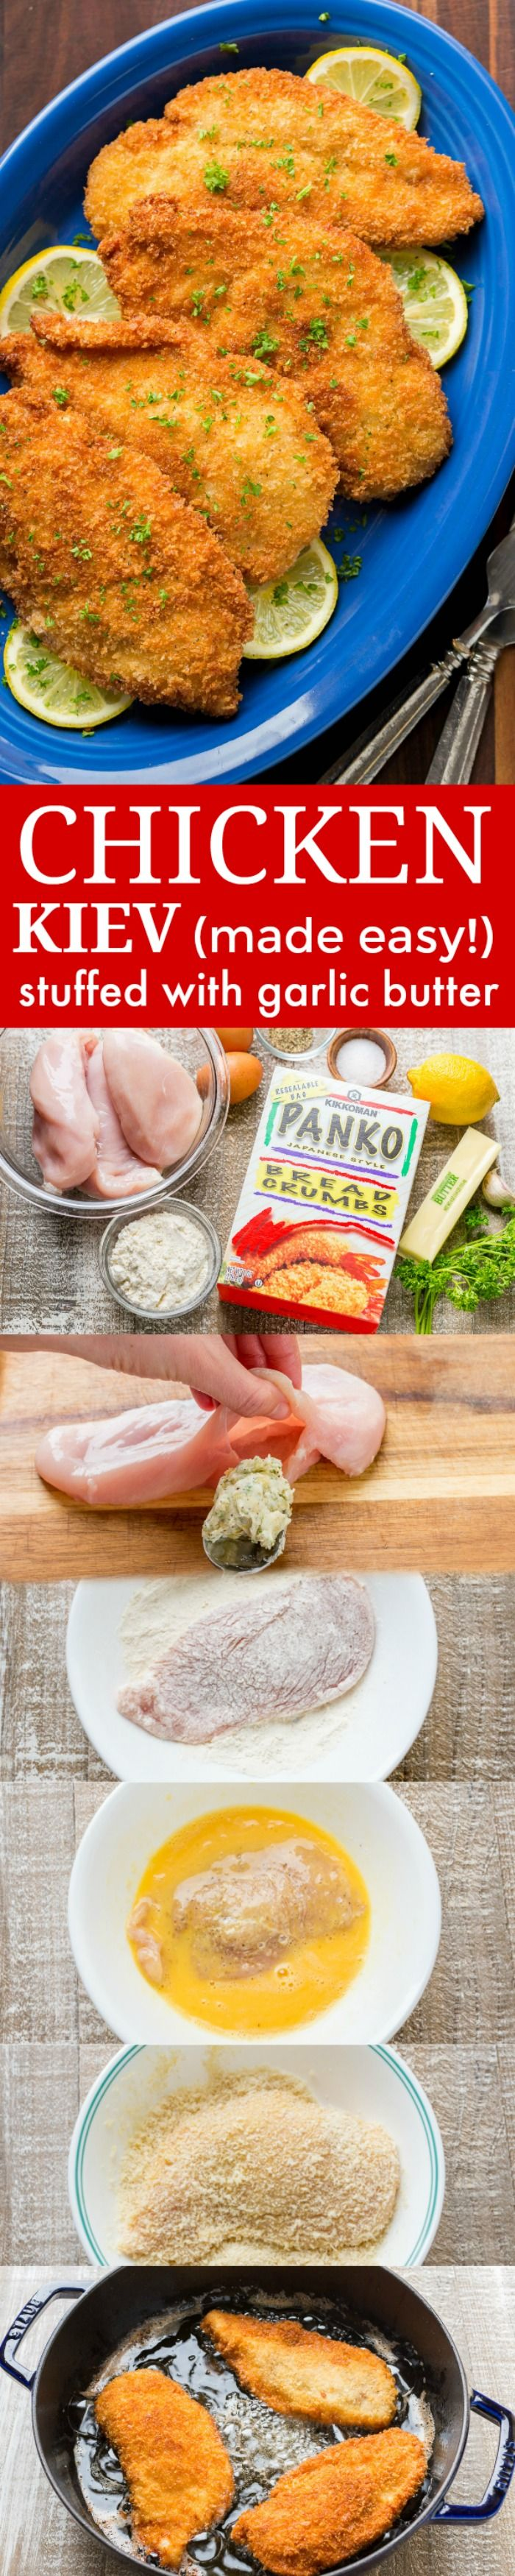 Slow Cooker: Easy Chicken Kiev Recipe - NatashasKitchen.com